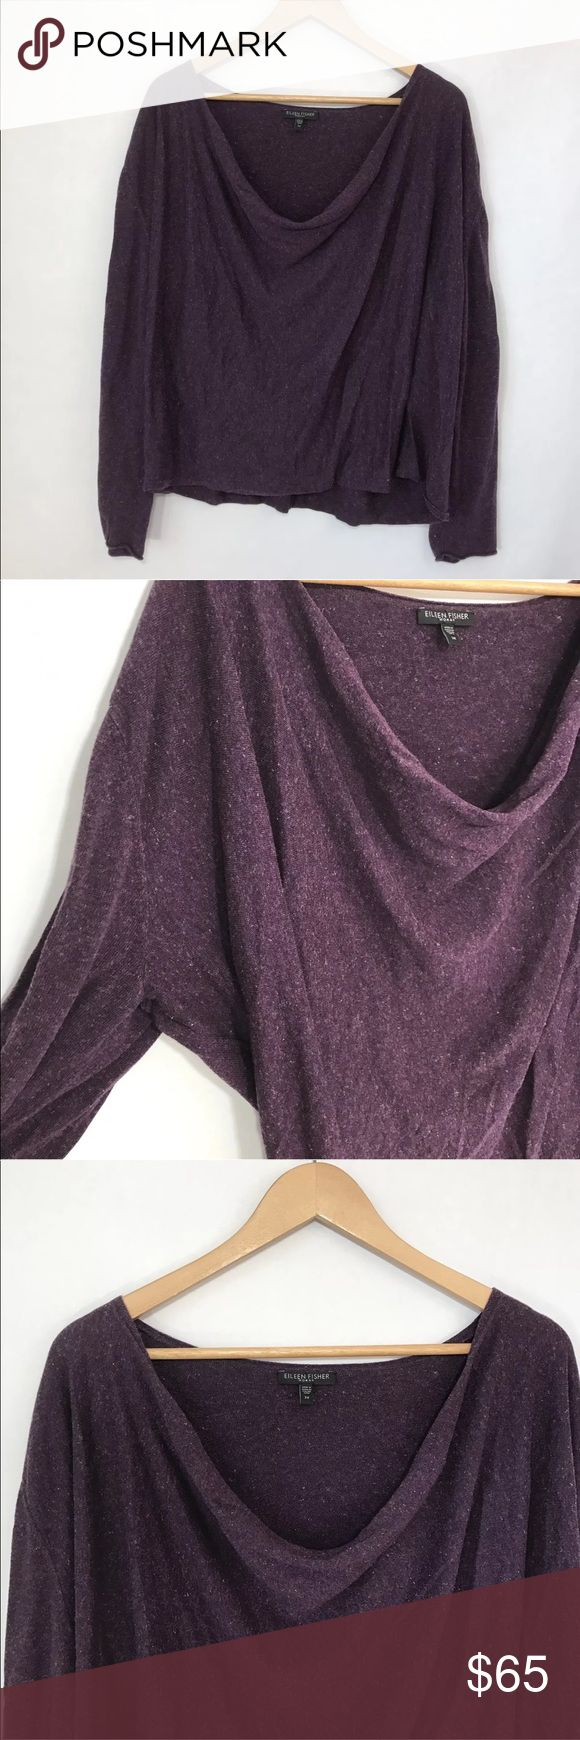 {Eileen•Fisher} Linen Blend cowl Neck sweater Eileen Fisher Womens Cowl Neck Sweater Plus Size 3x Linen Cotton Blend Purple   Bust across lying flat: 31 inches   Length from tag to hem down the middle: 26 inches   Made of Italian Yarn Eileen Fisher Sweaters Cowl & Turtlenecks